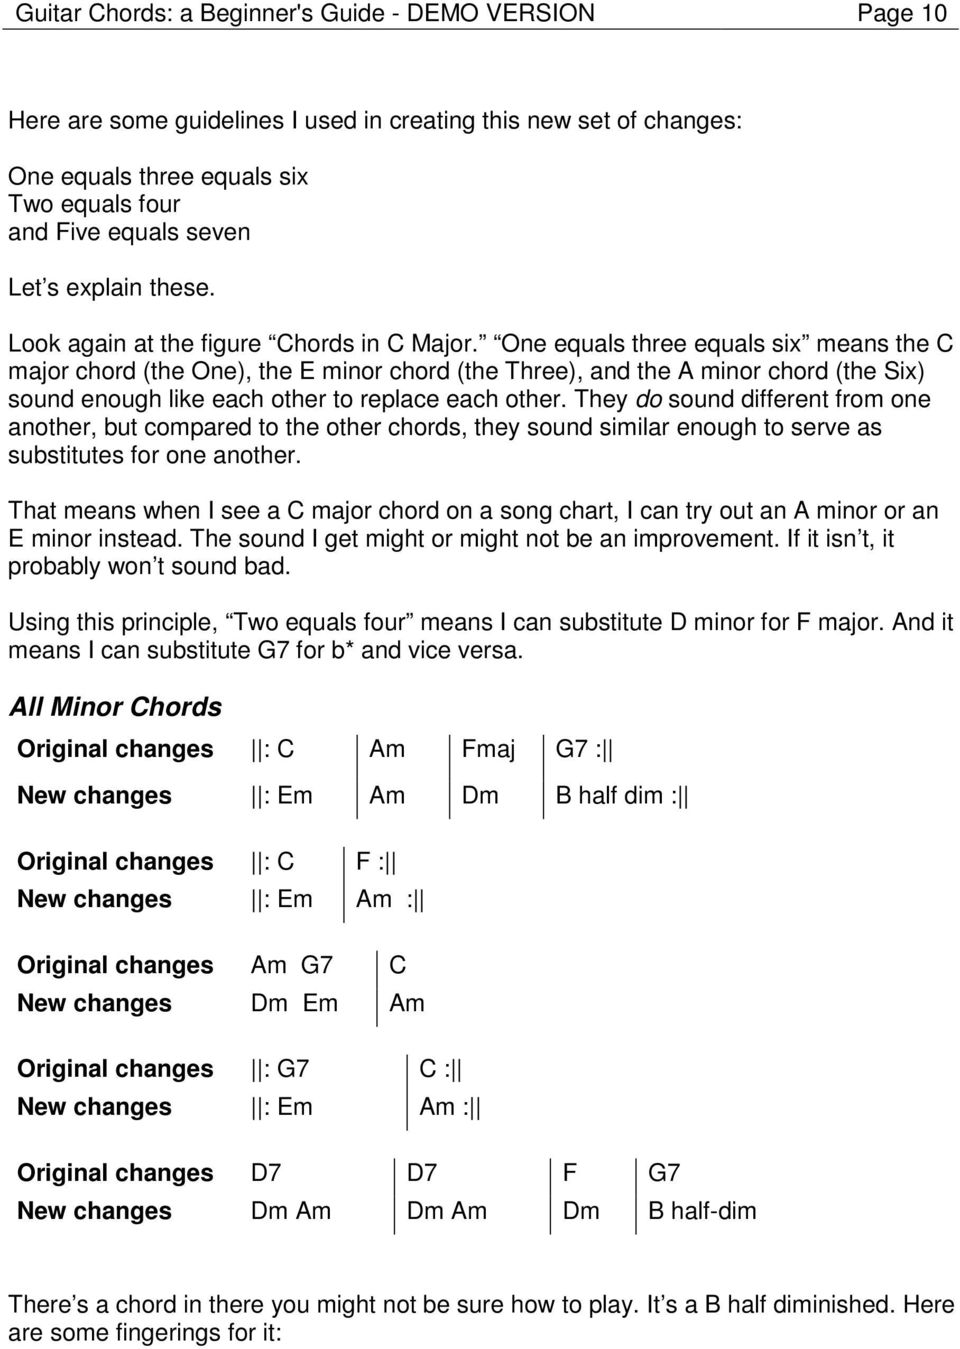 Guitar Chords a Beginner's Guide DEMO VERSION by Darrin Koltow ...